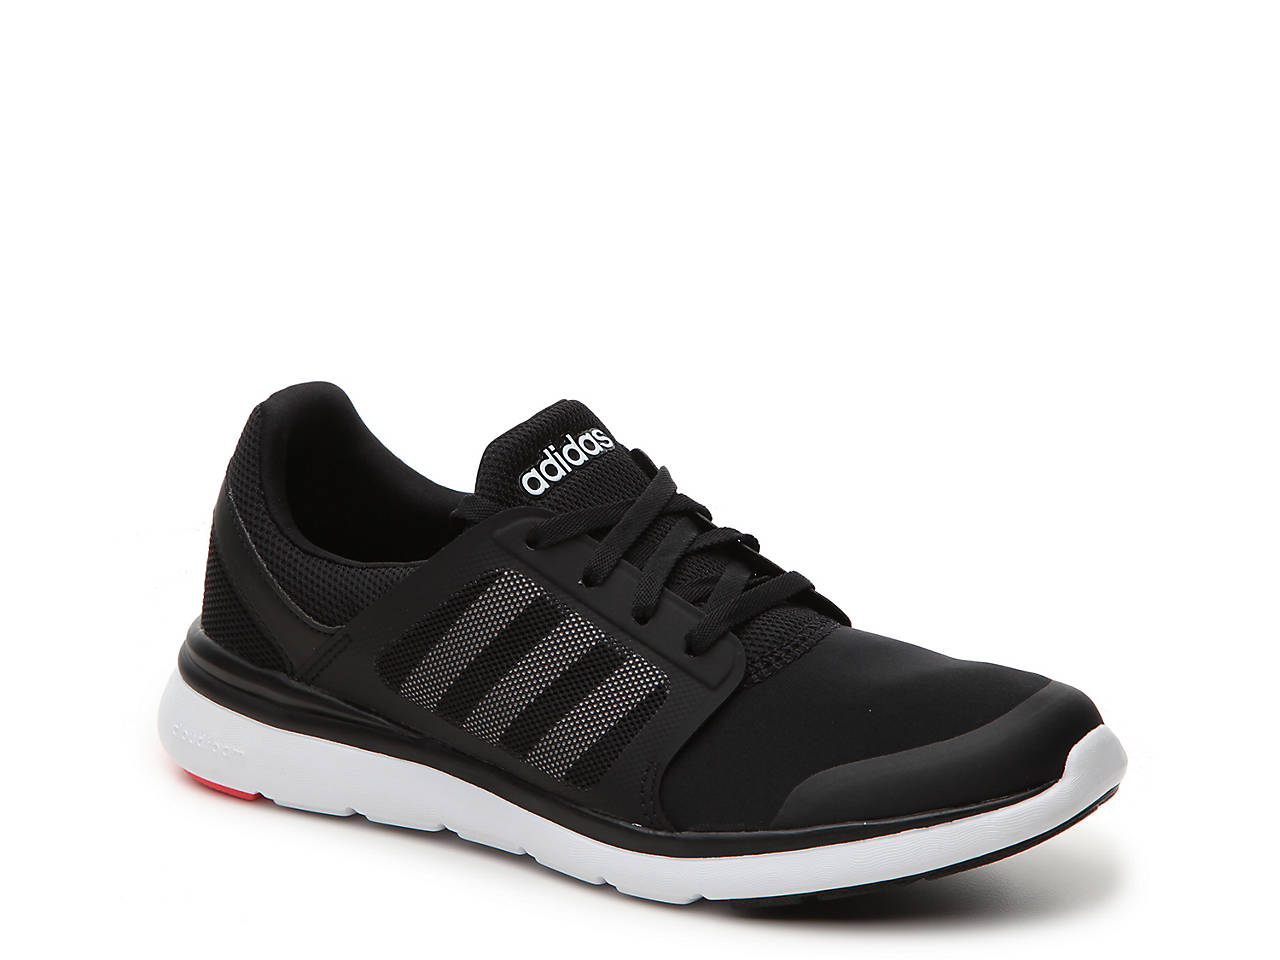 adidas neo cloudfoam women's sneakers